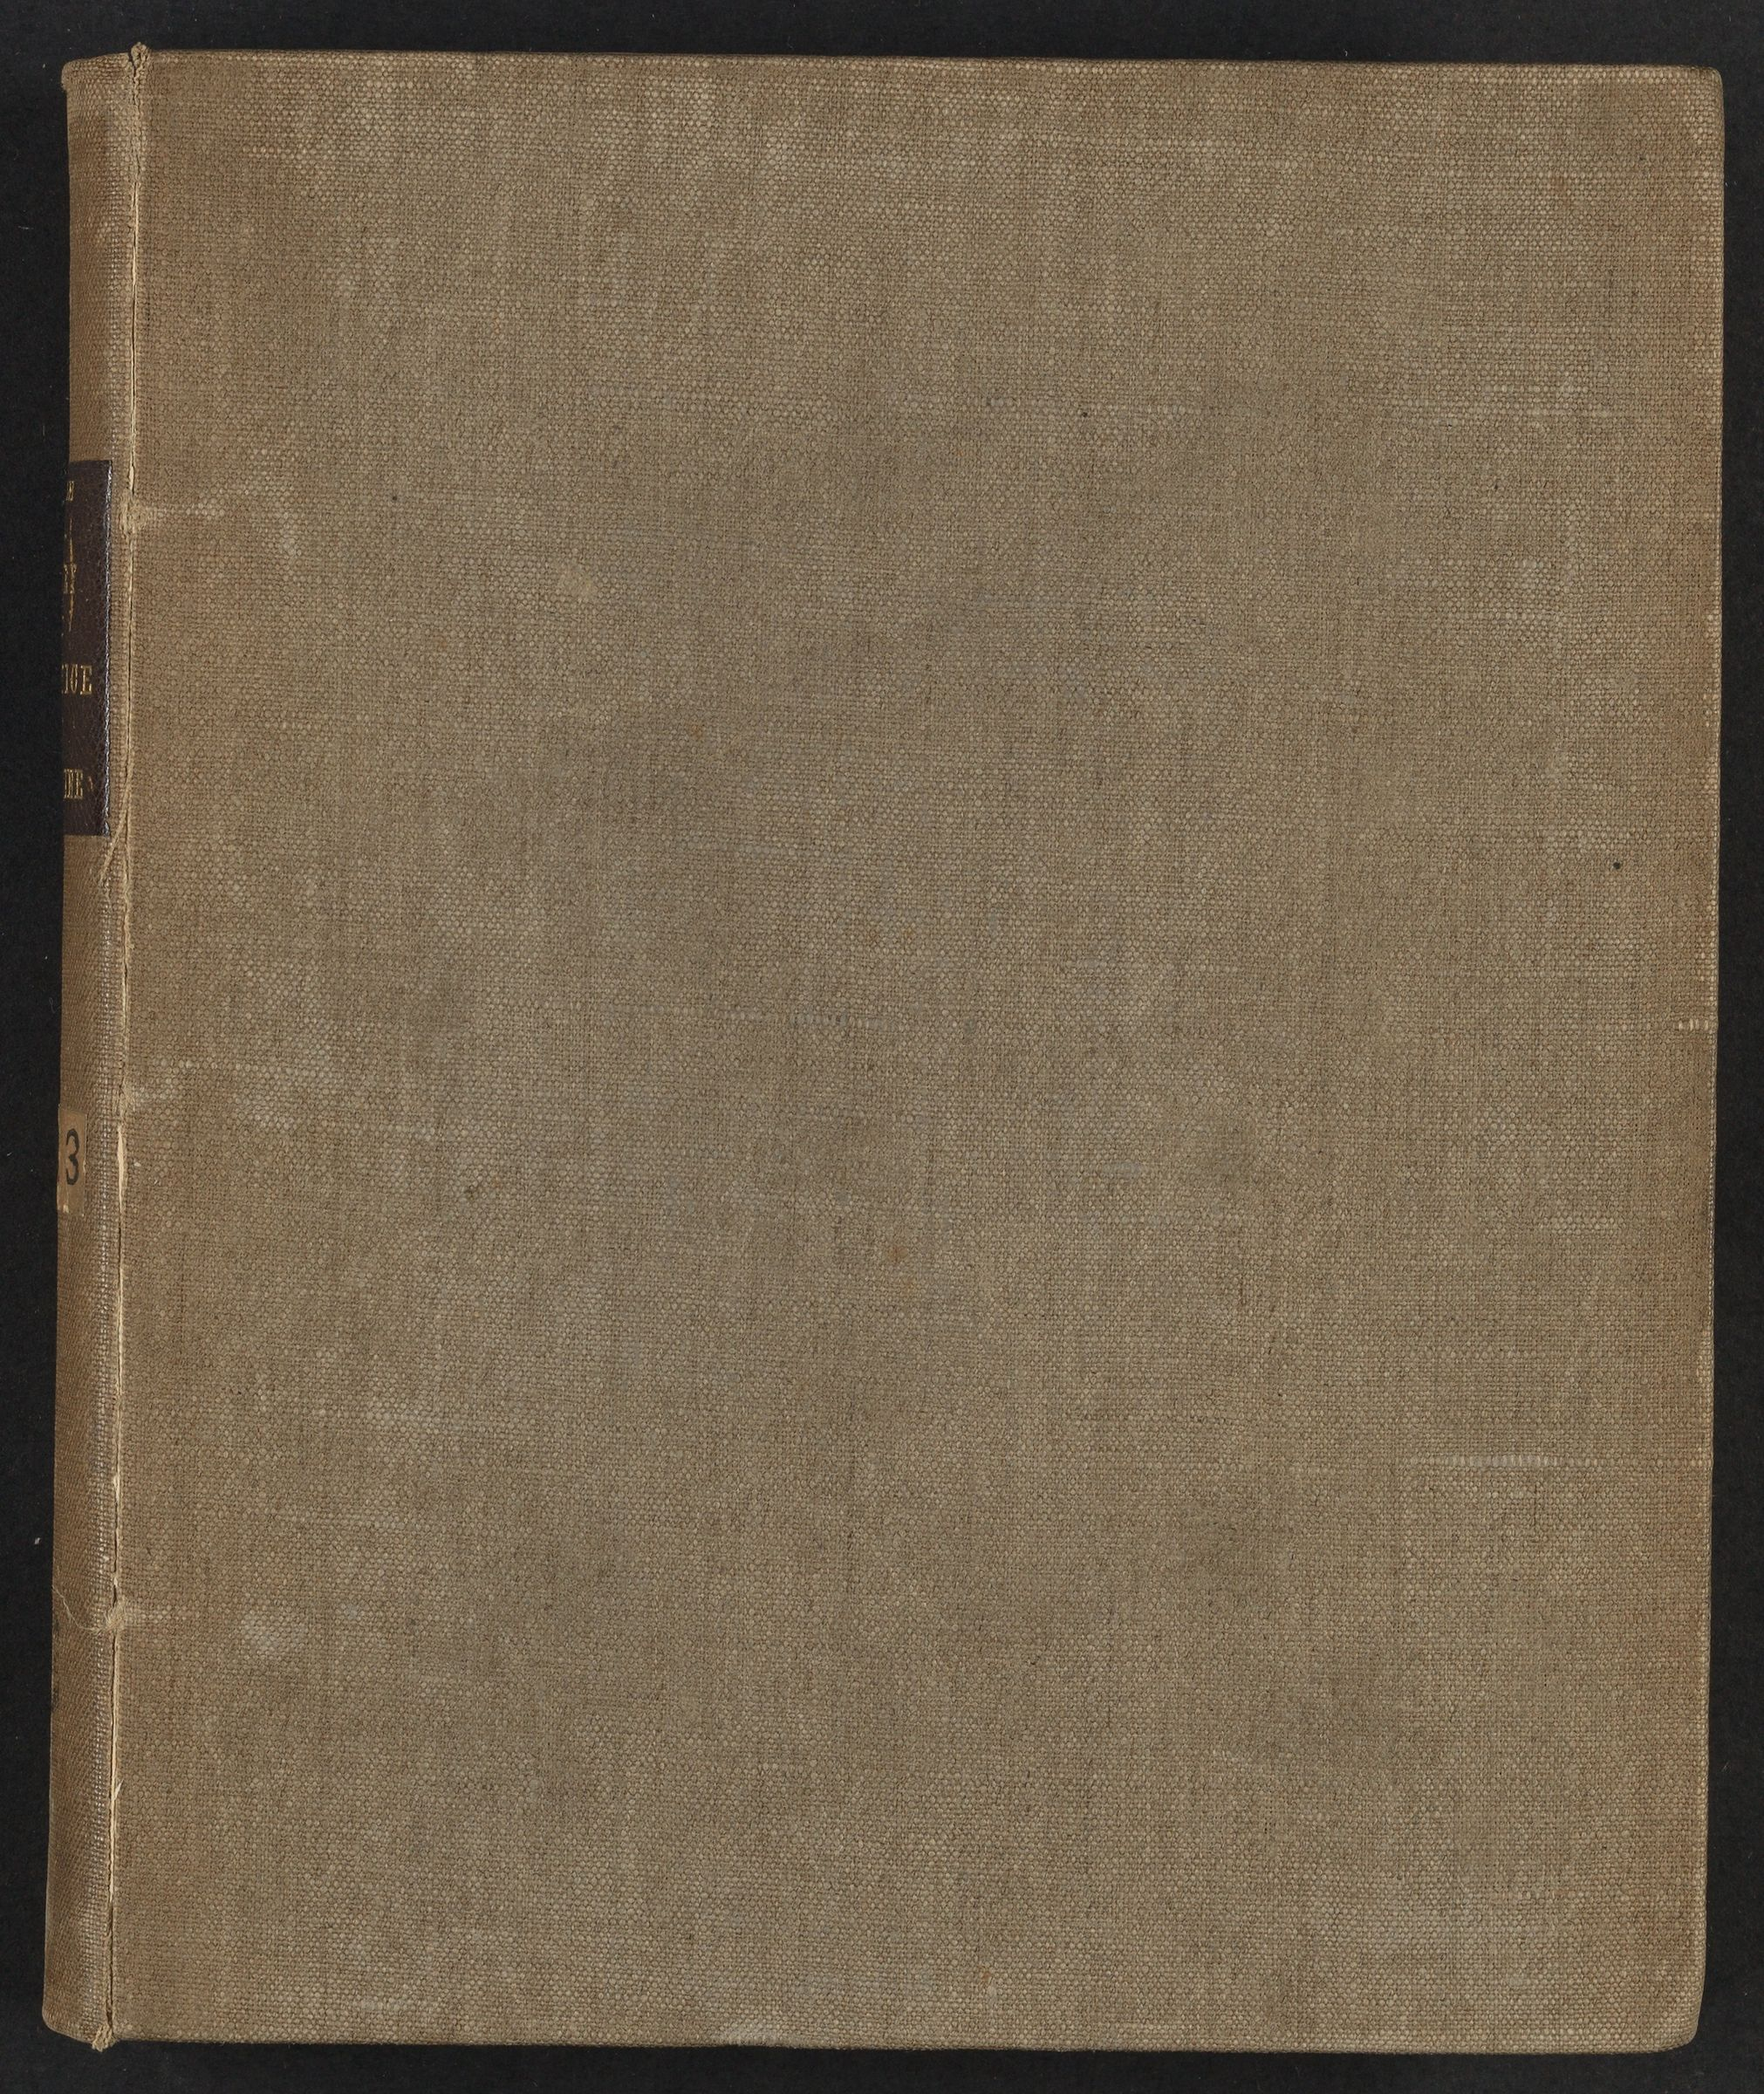 Student notes from medical lectures by Benjamin Rush, undated